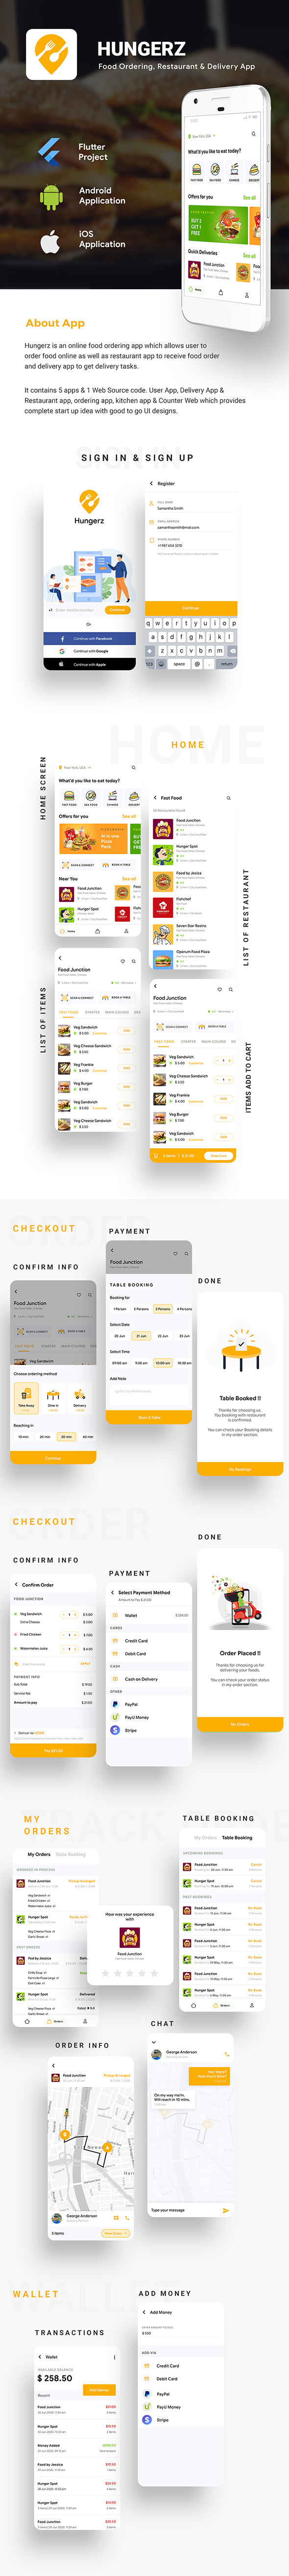 6 in 1 multi Restaurant Food Ordering App|Food Delivery App|Android+iOS App Template|Flutter Hungerz - 9